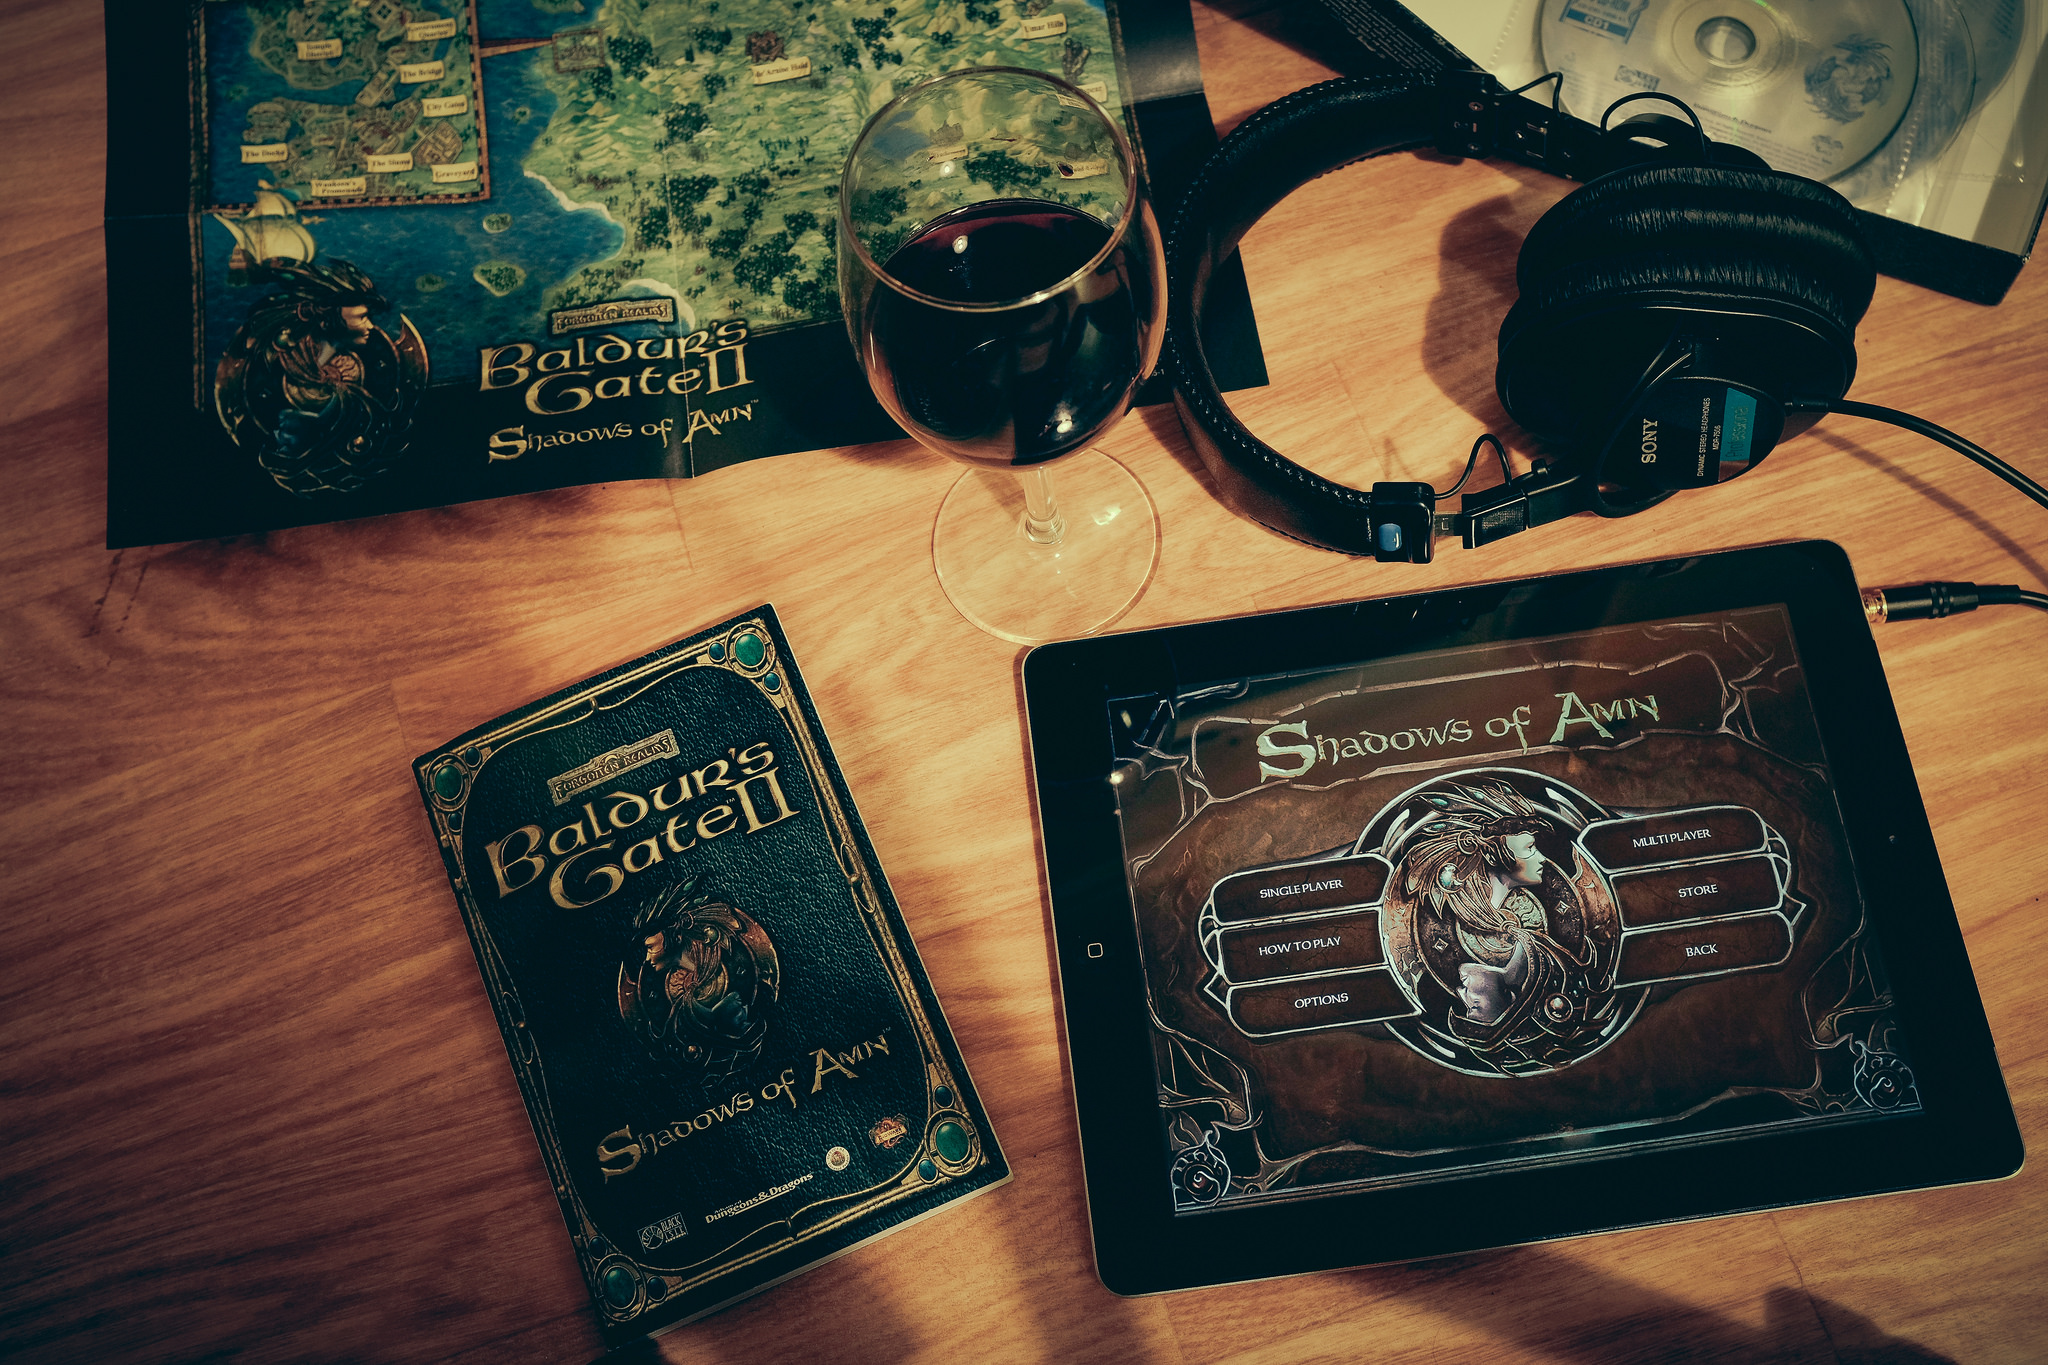 Baldur's Gate is one of the best games to play on your phone ... photo by CC user johanl on Flickr